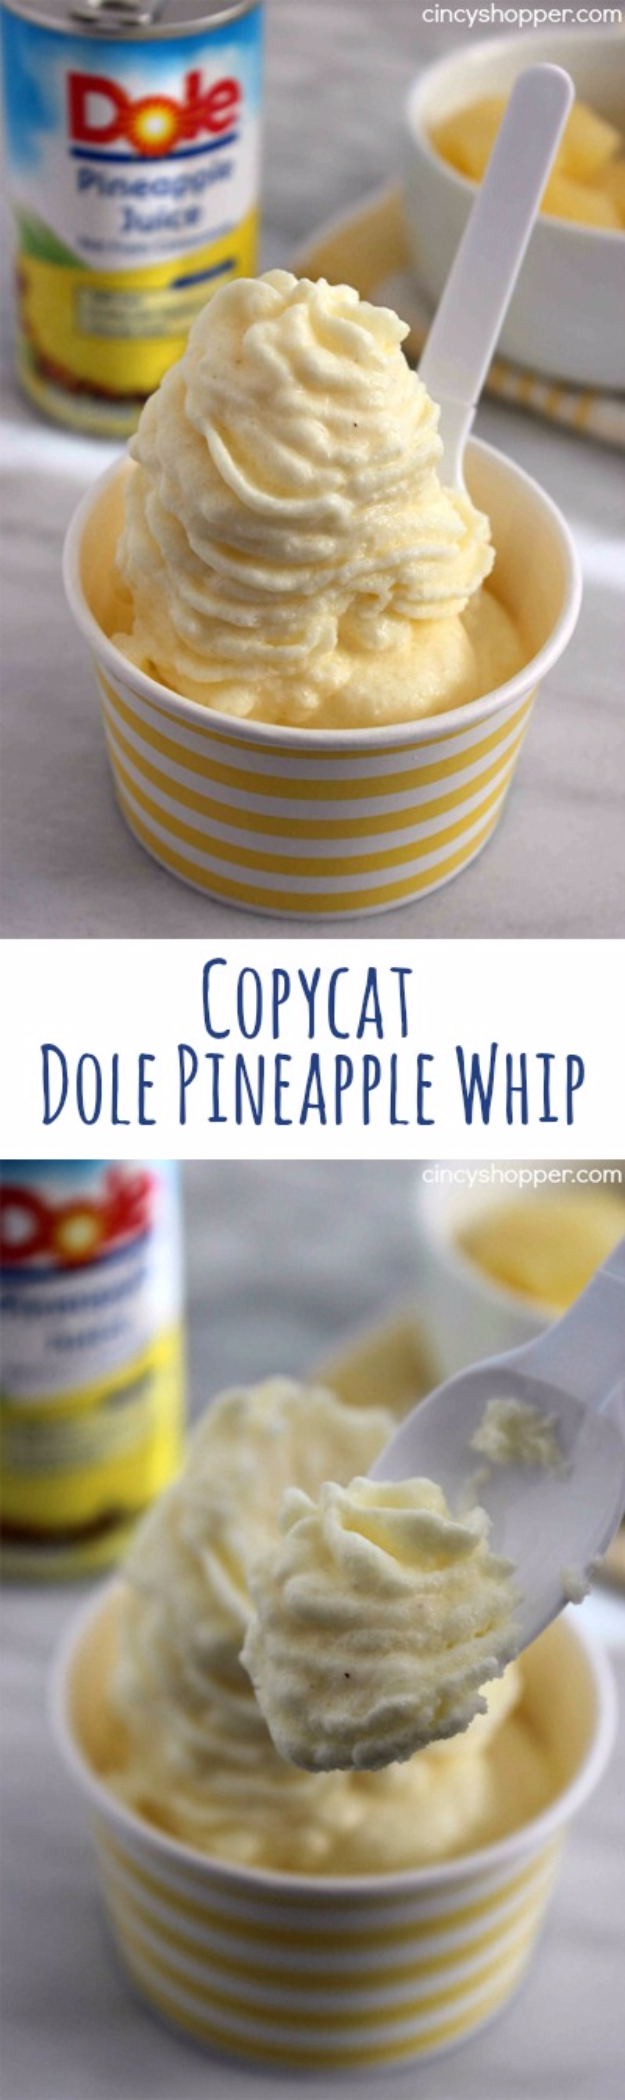 Best Copycat Recipes From Top Restaurants - Copycat Dole Pineapple Whip - Awesome Recipe Knockoffs and Recipe Ideas from Chipotle Restaurant, Starbucks, Olive Garden, Cinabbon, Cracker Barrel, Taco Bell, Cheesecake Factory, KFC, Mc Donalds, Red Lobster, Panda Express #recipes #copycat #dinnerideas